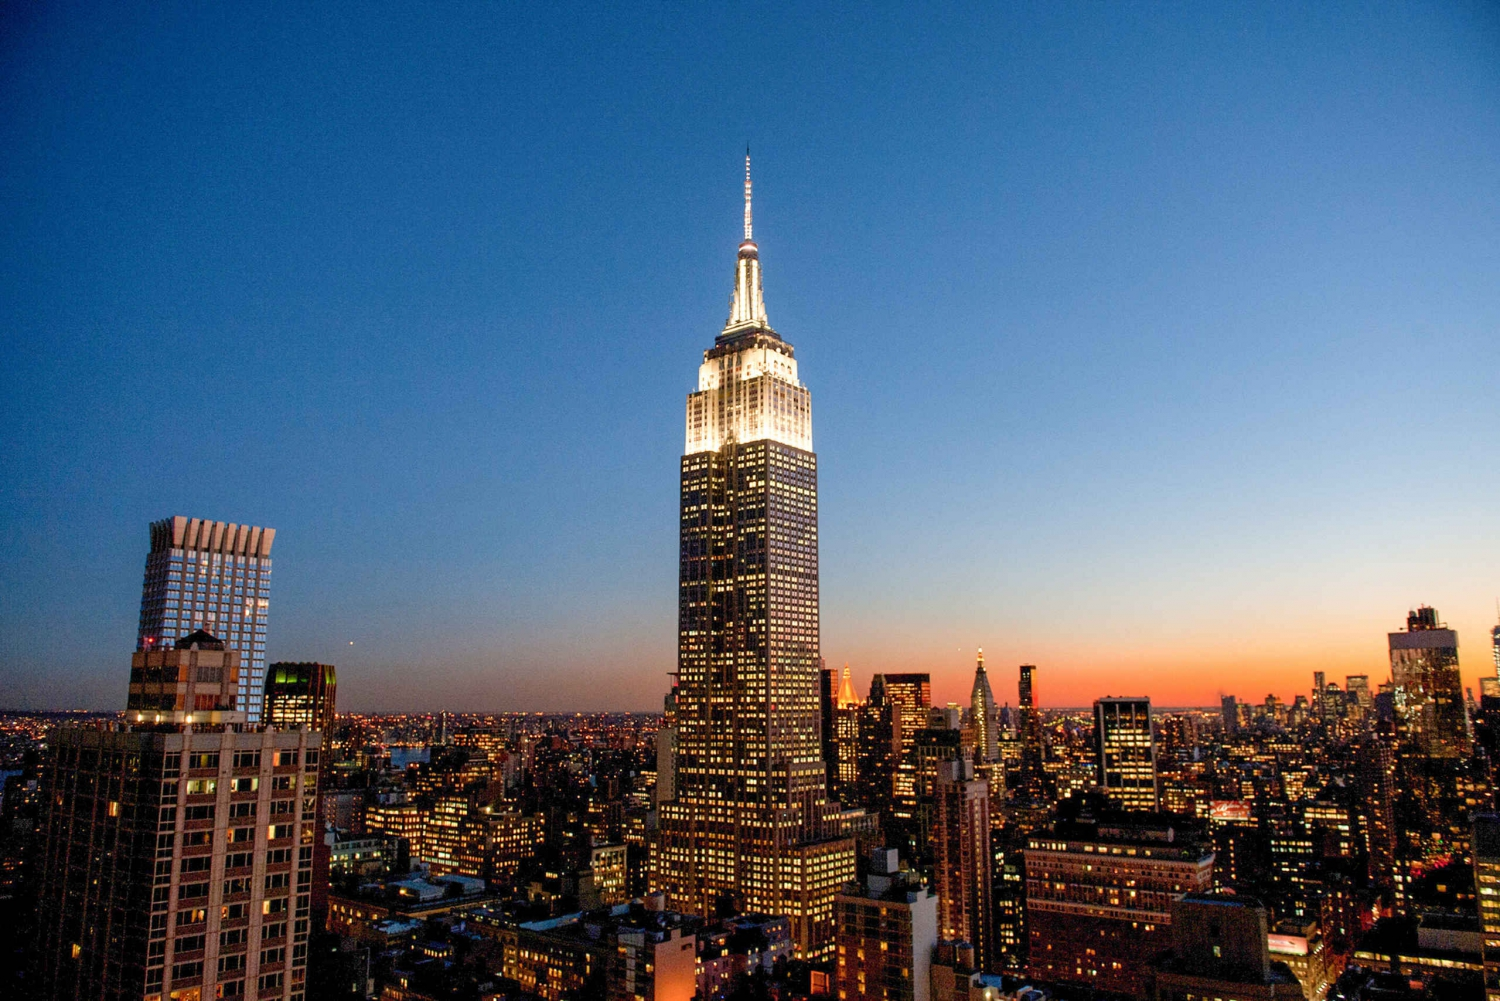 Empire State Building General & Express Ticket Options